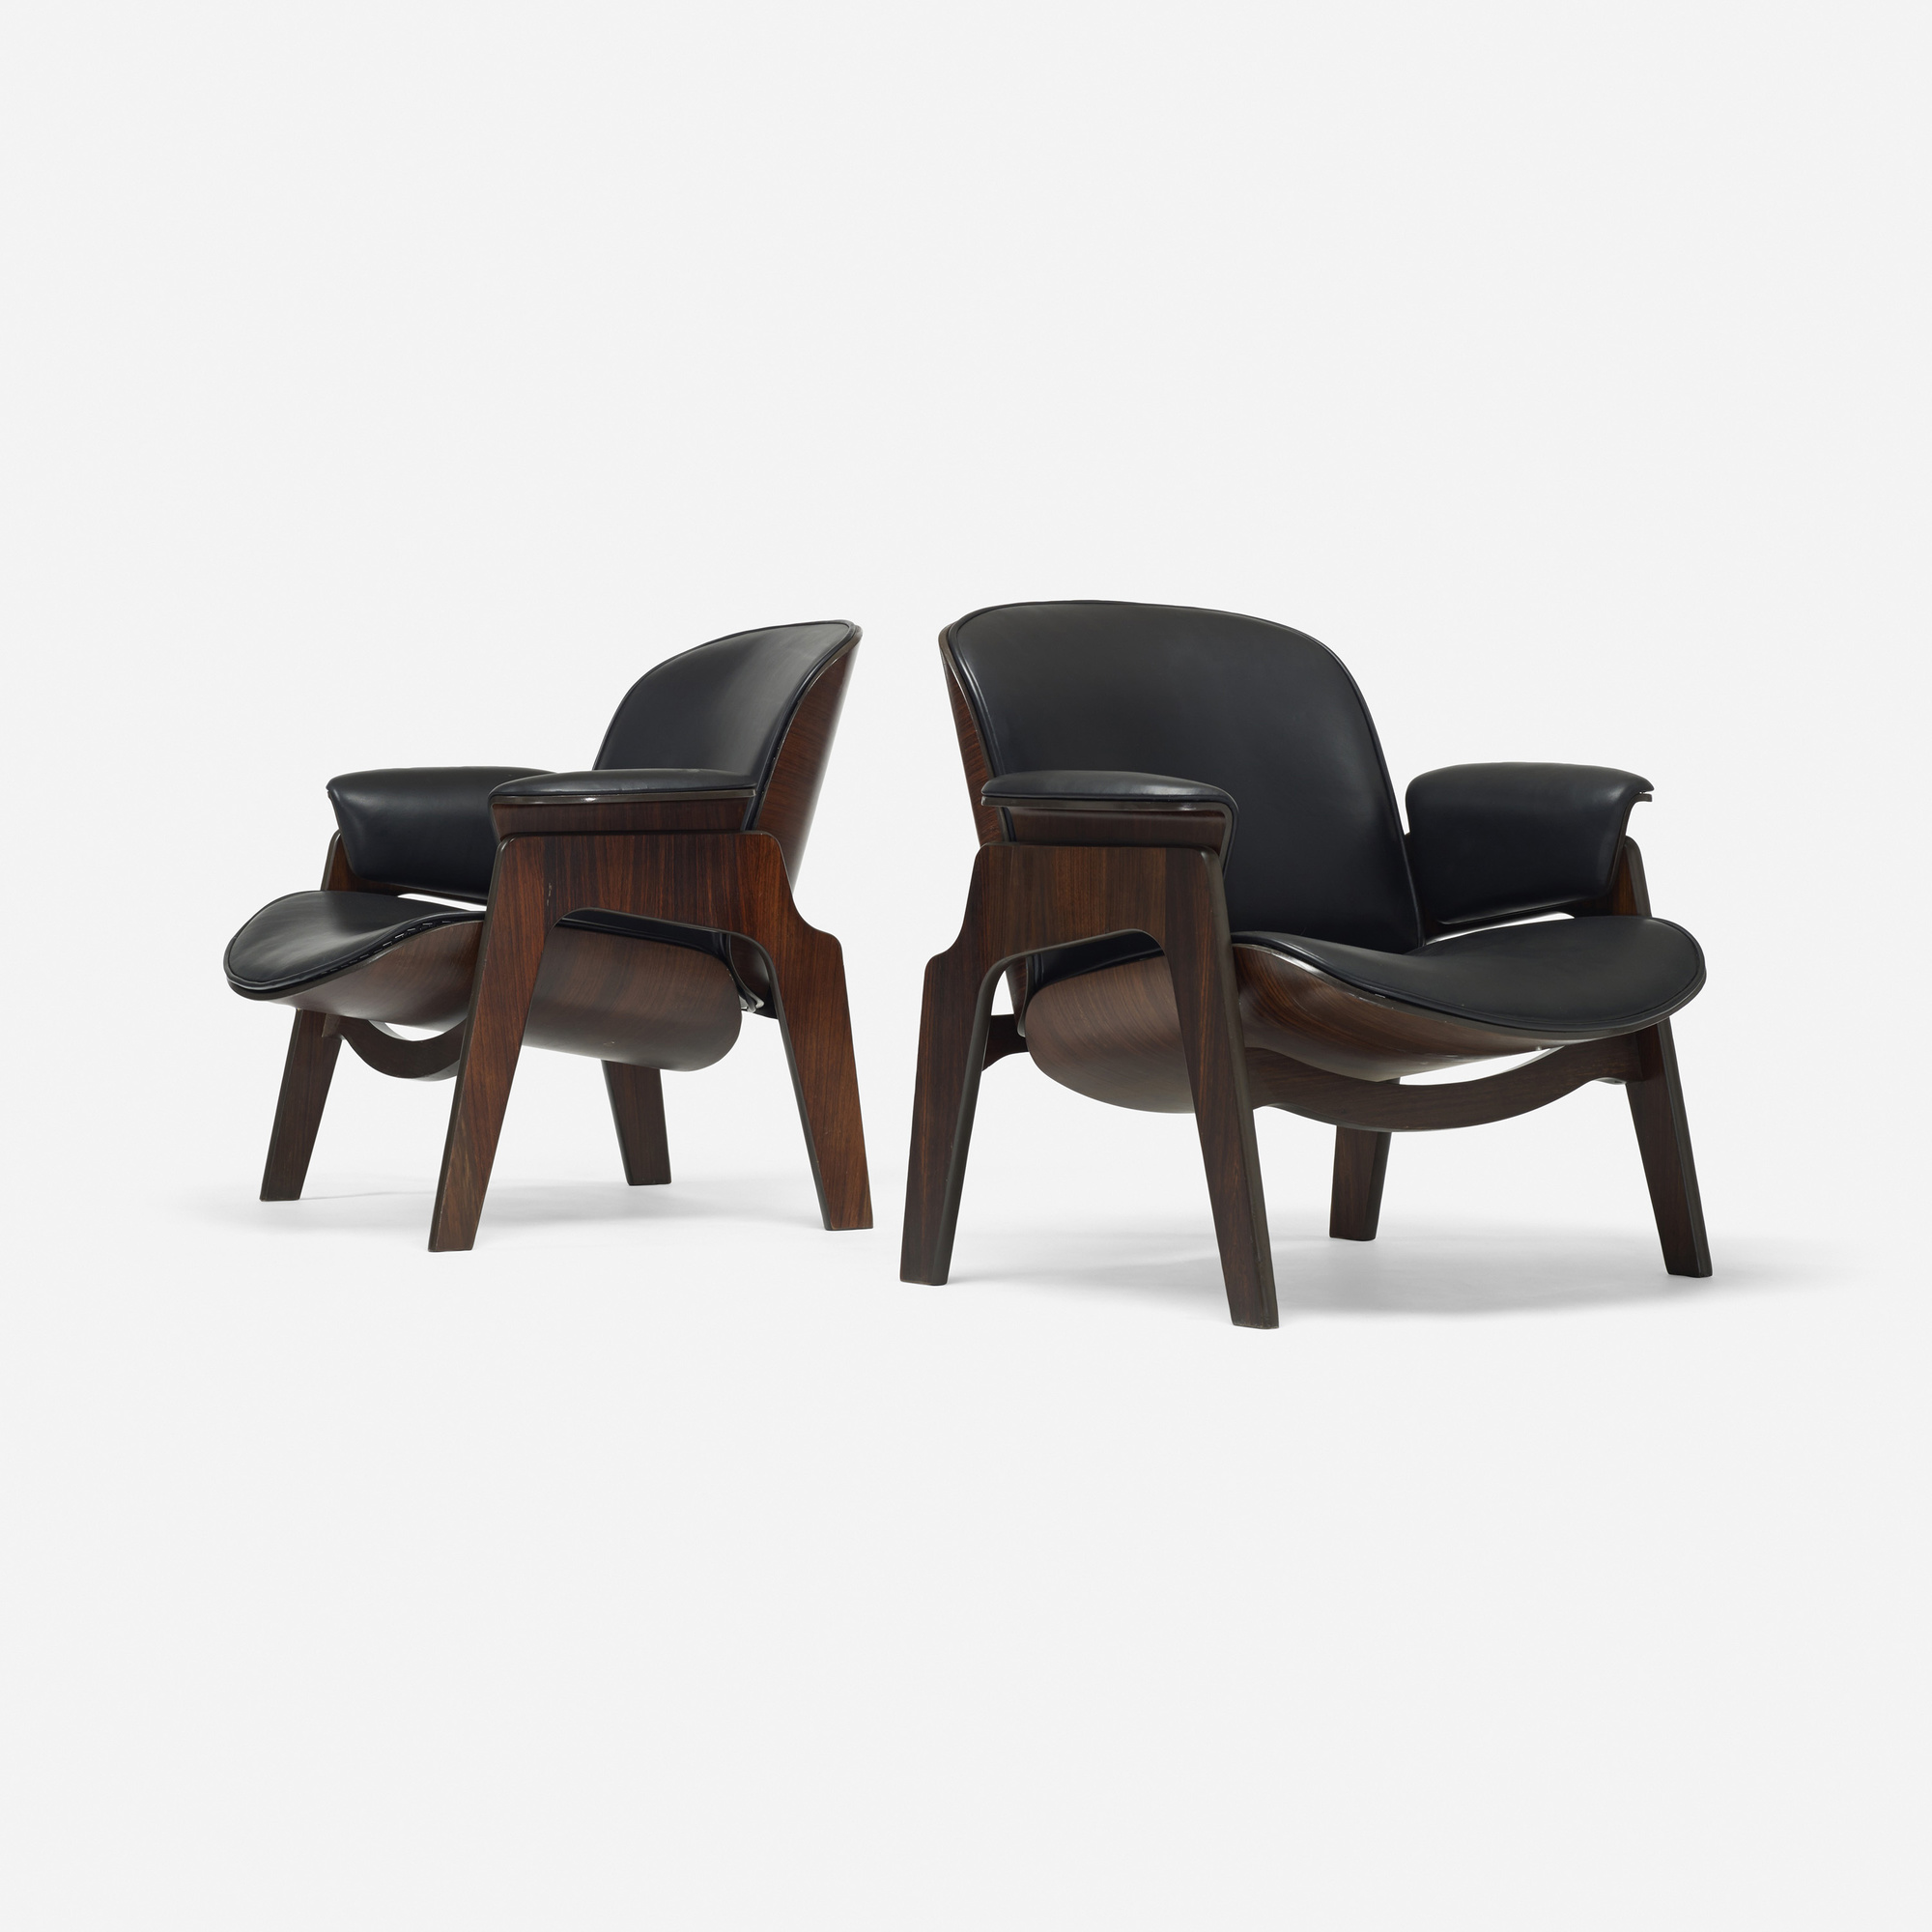 2014 Design23 252Ico ParisiLounge ChairsPairlt; October 5AL3Rq4j